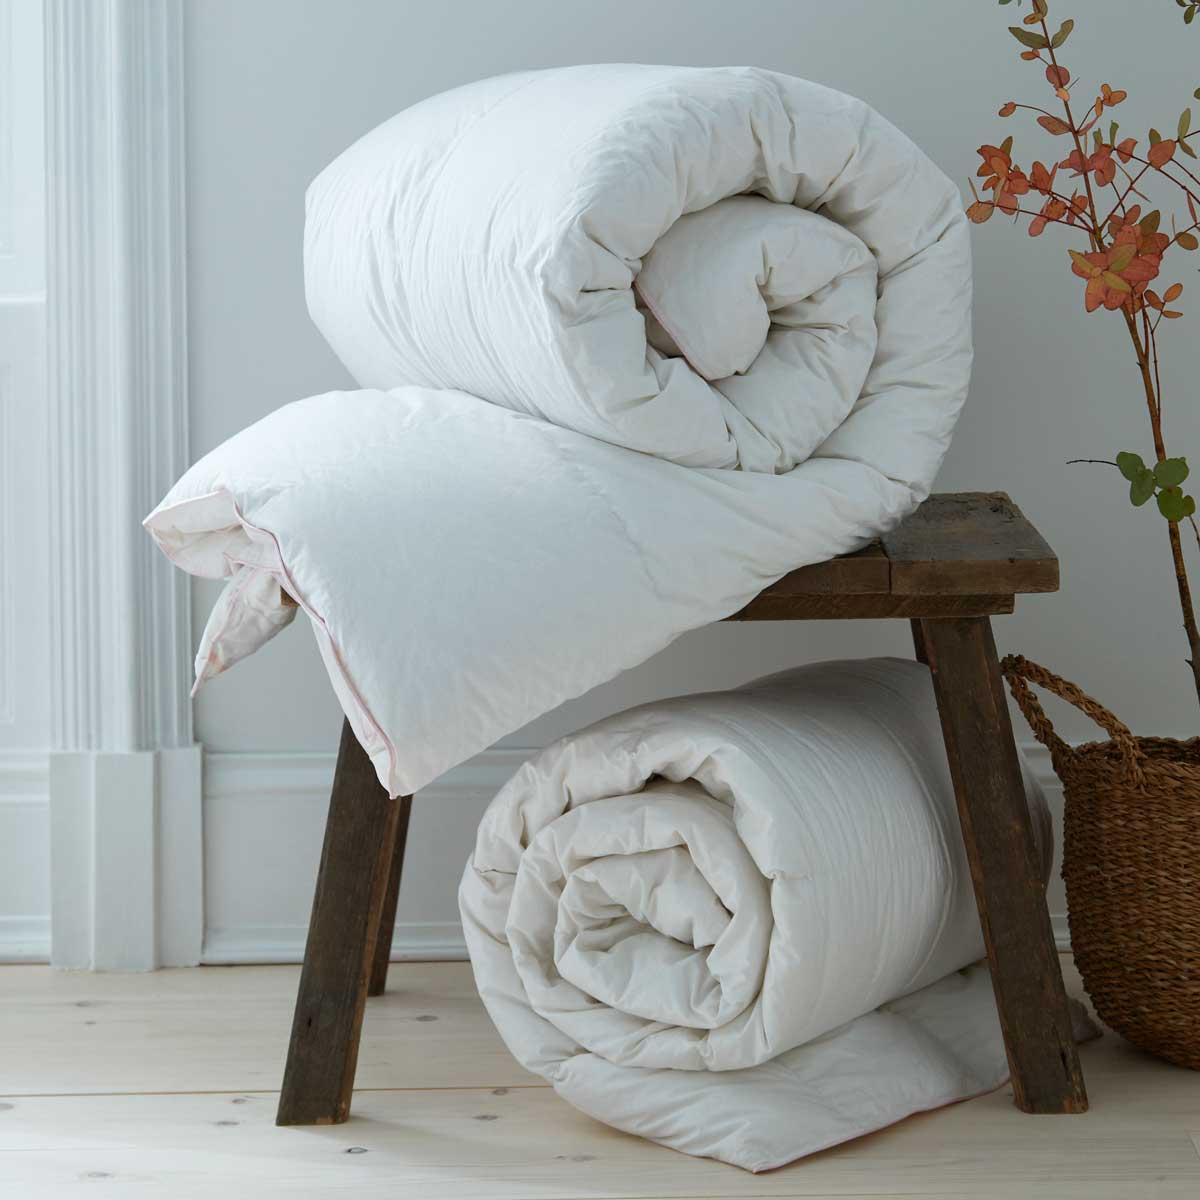 Why is Cotton the Best Choice Fibre for a Luxury Duvet?